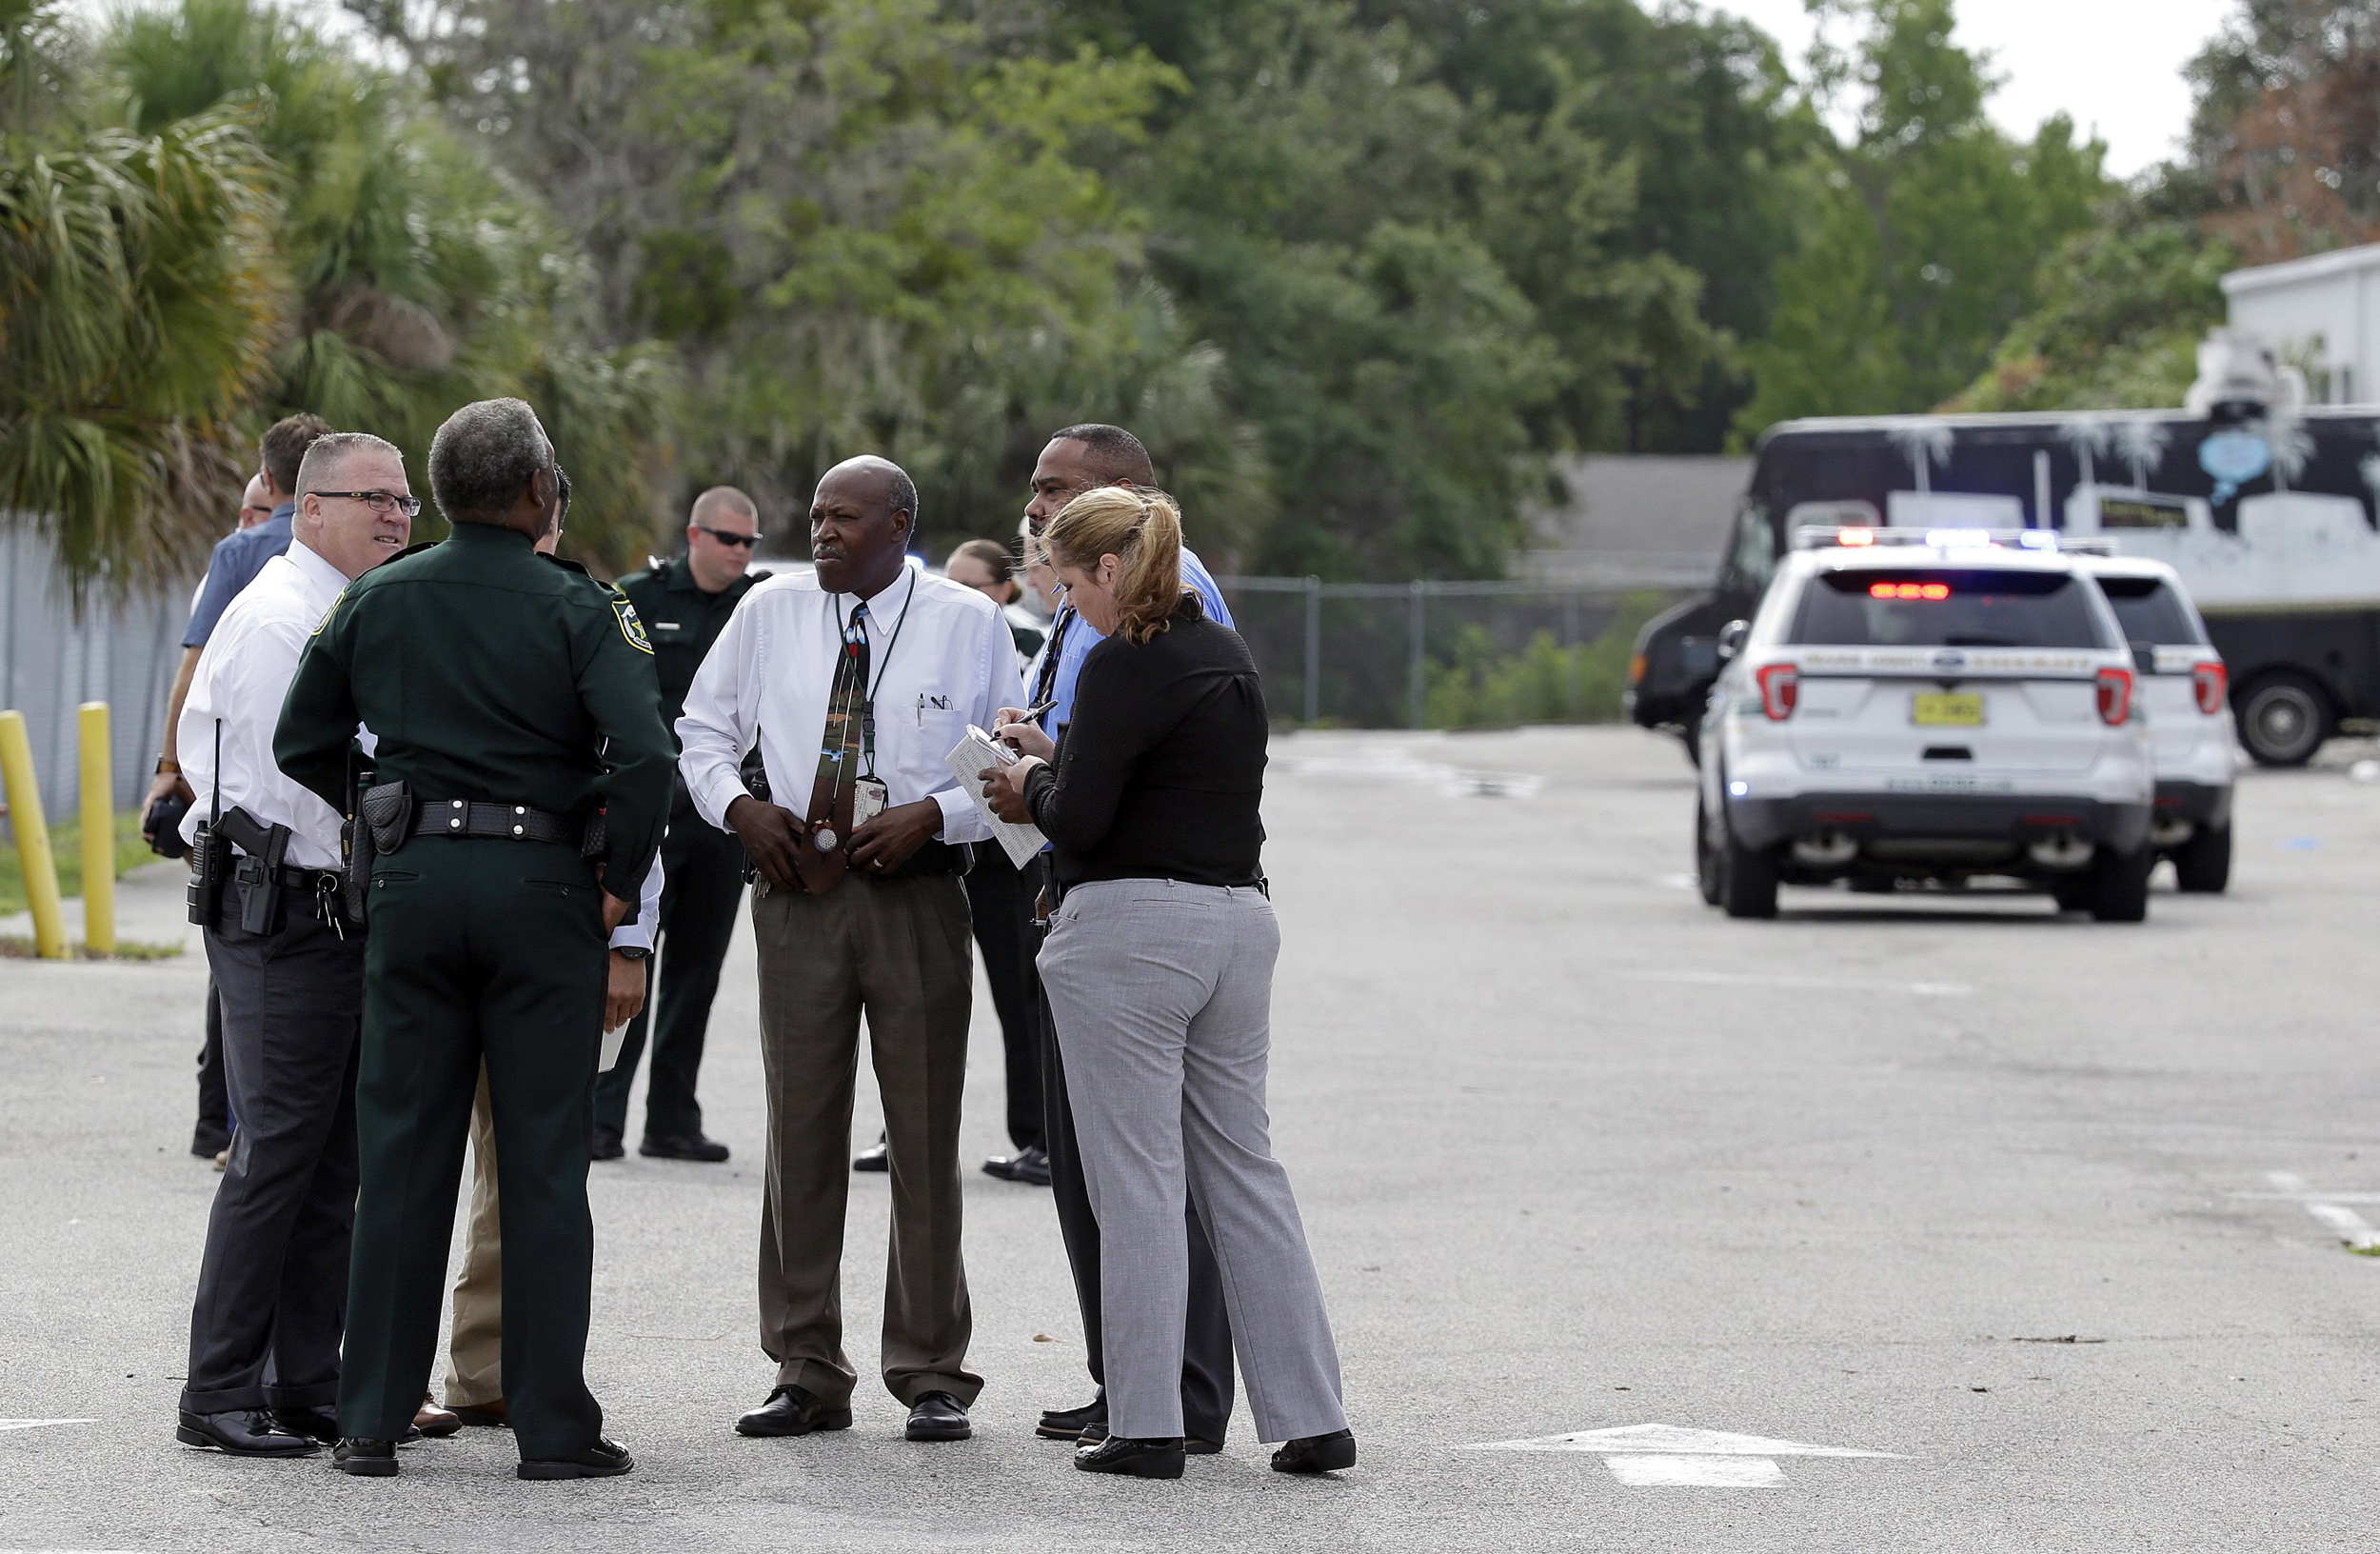 """Image: Authorities confer, June 5, 2017, near Orlando, Florida. Law enforcement authorities said there were """"multiple fatalities"""" following a Monday morning shooting in an industrial area near Orlando."""